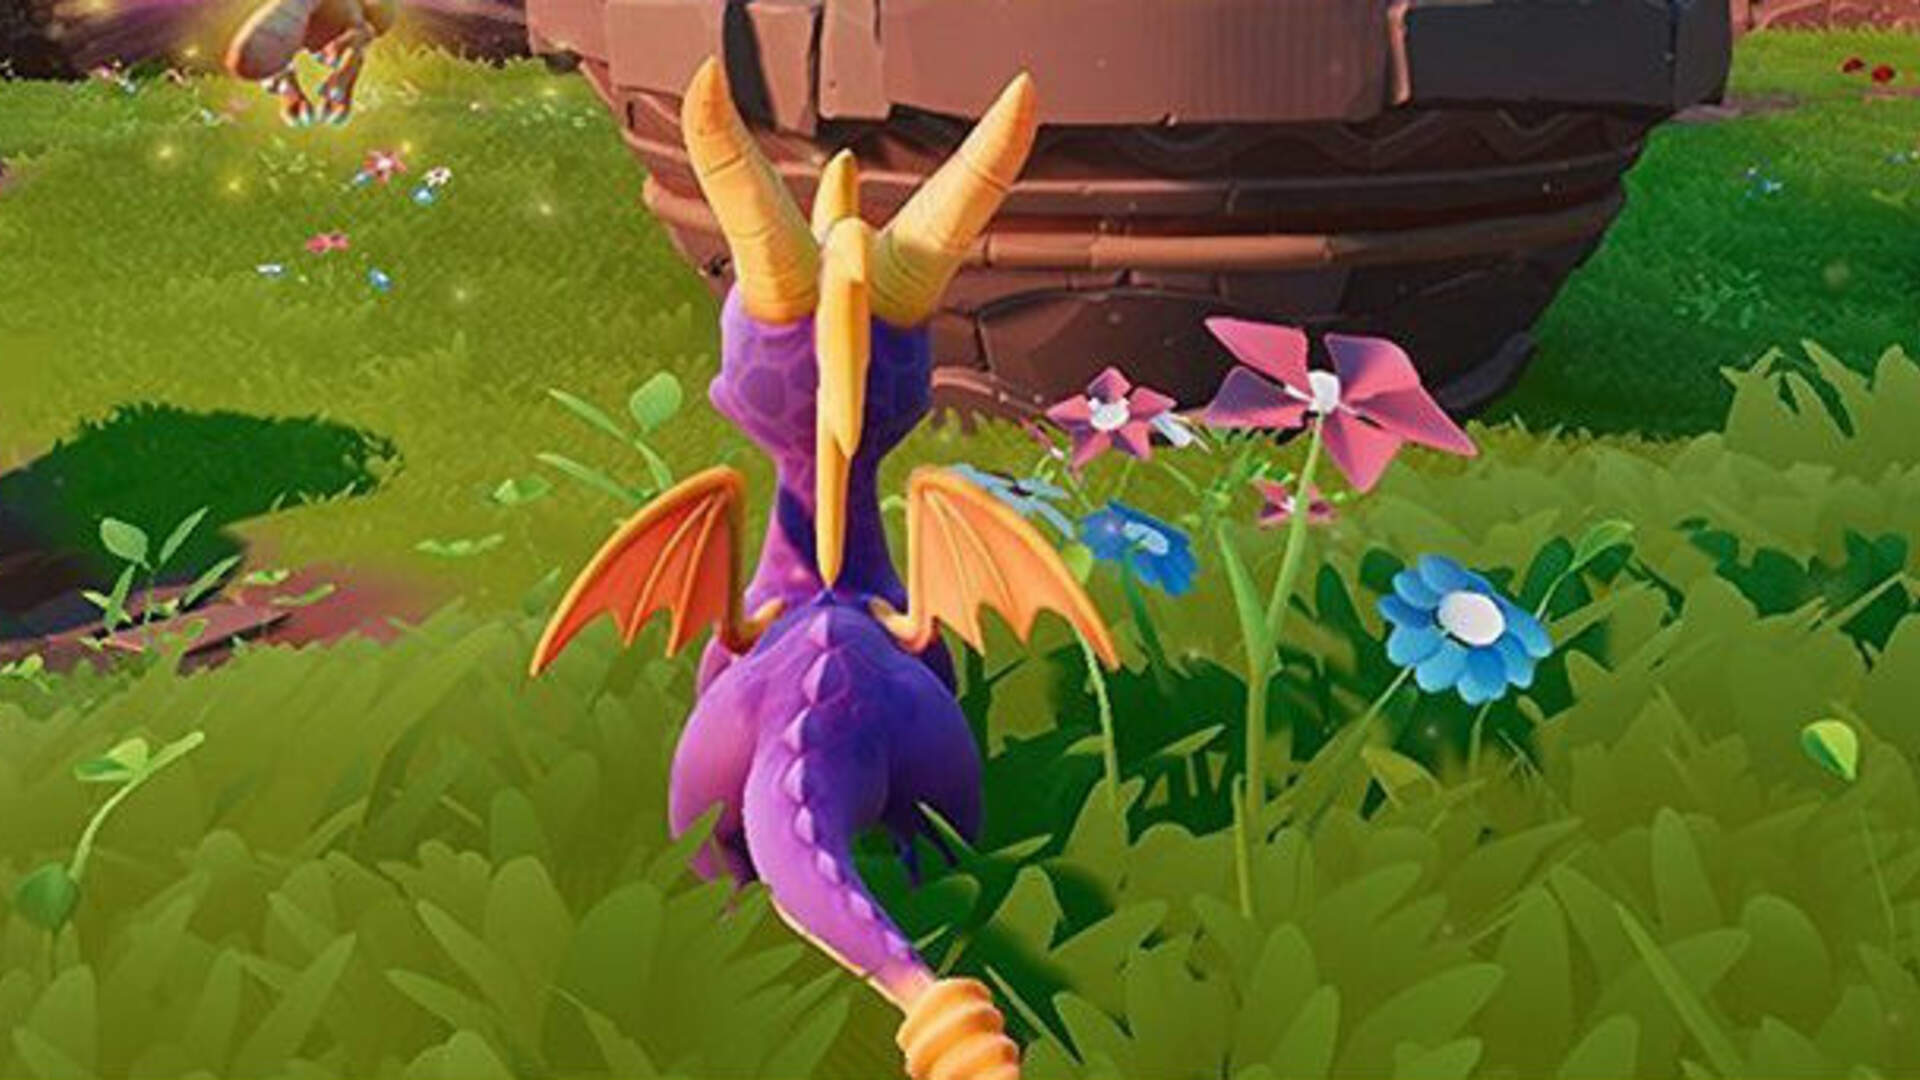 Spyro Reignited Trilogy Physical Edition Only Includes the First Game